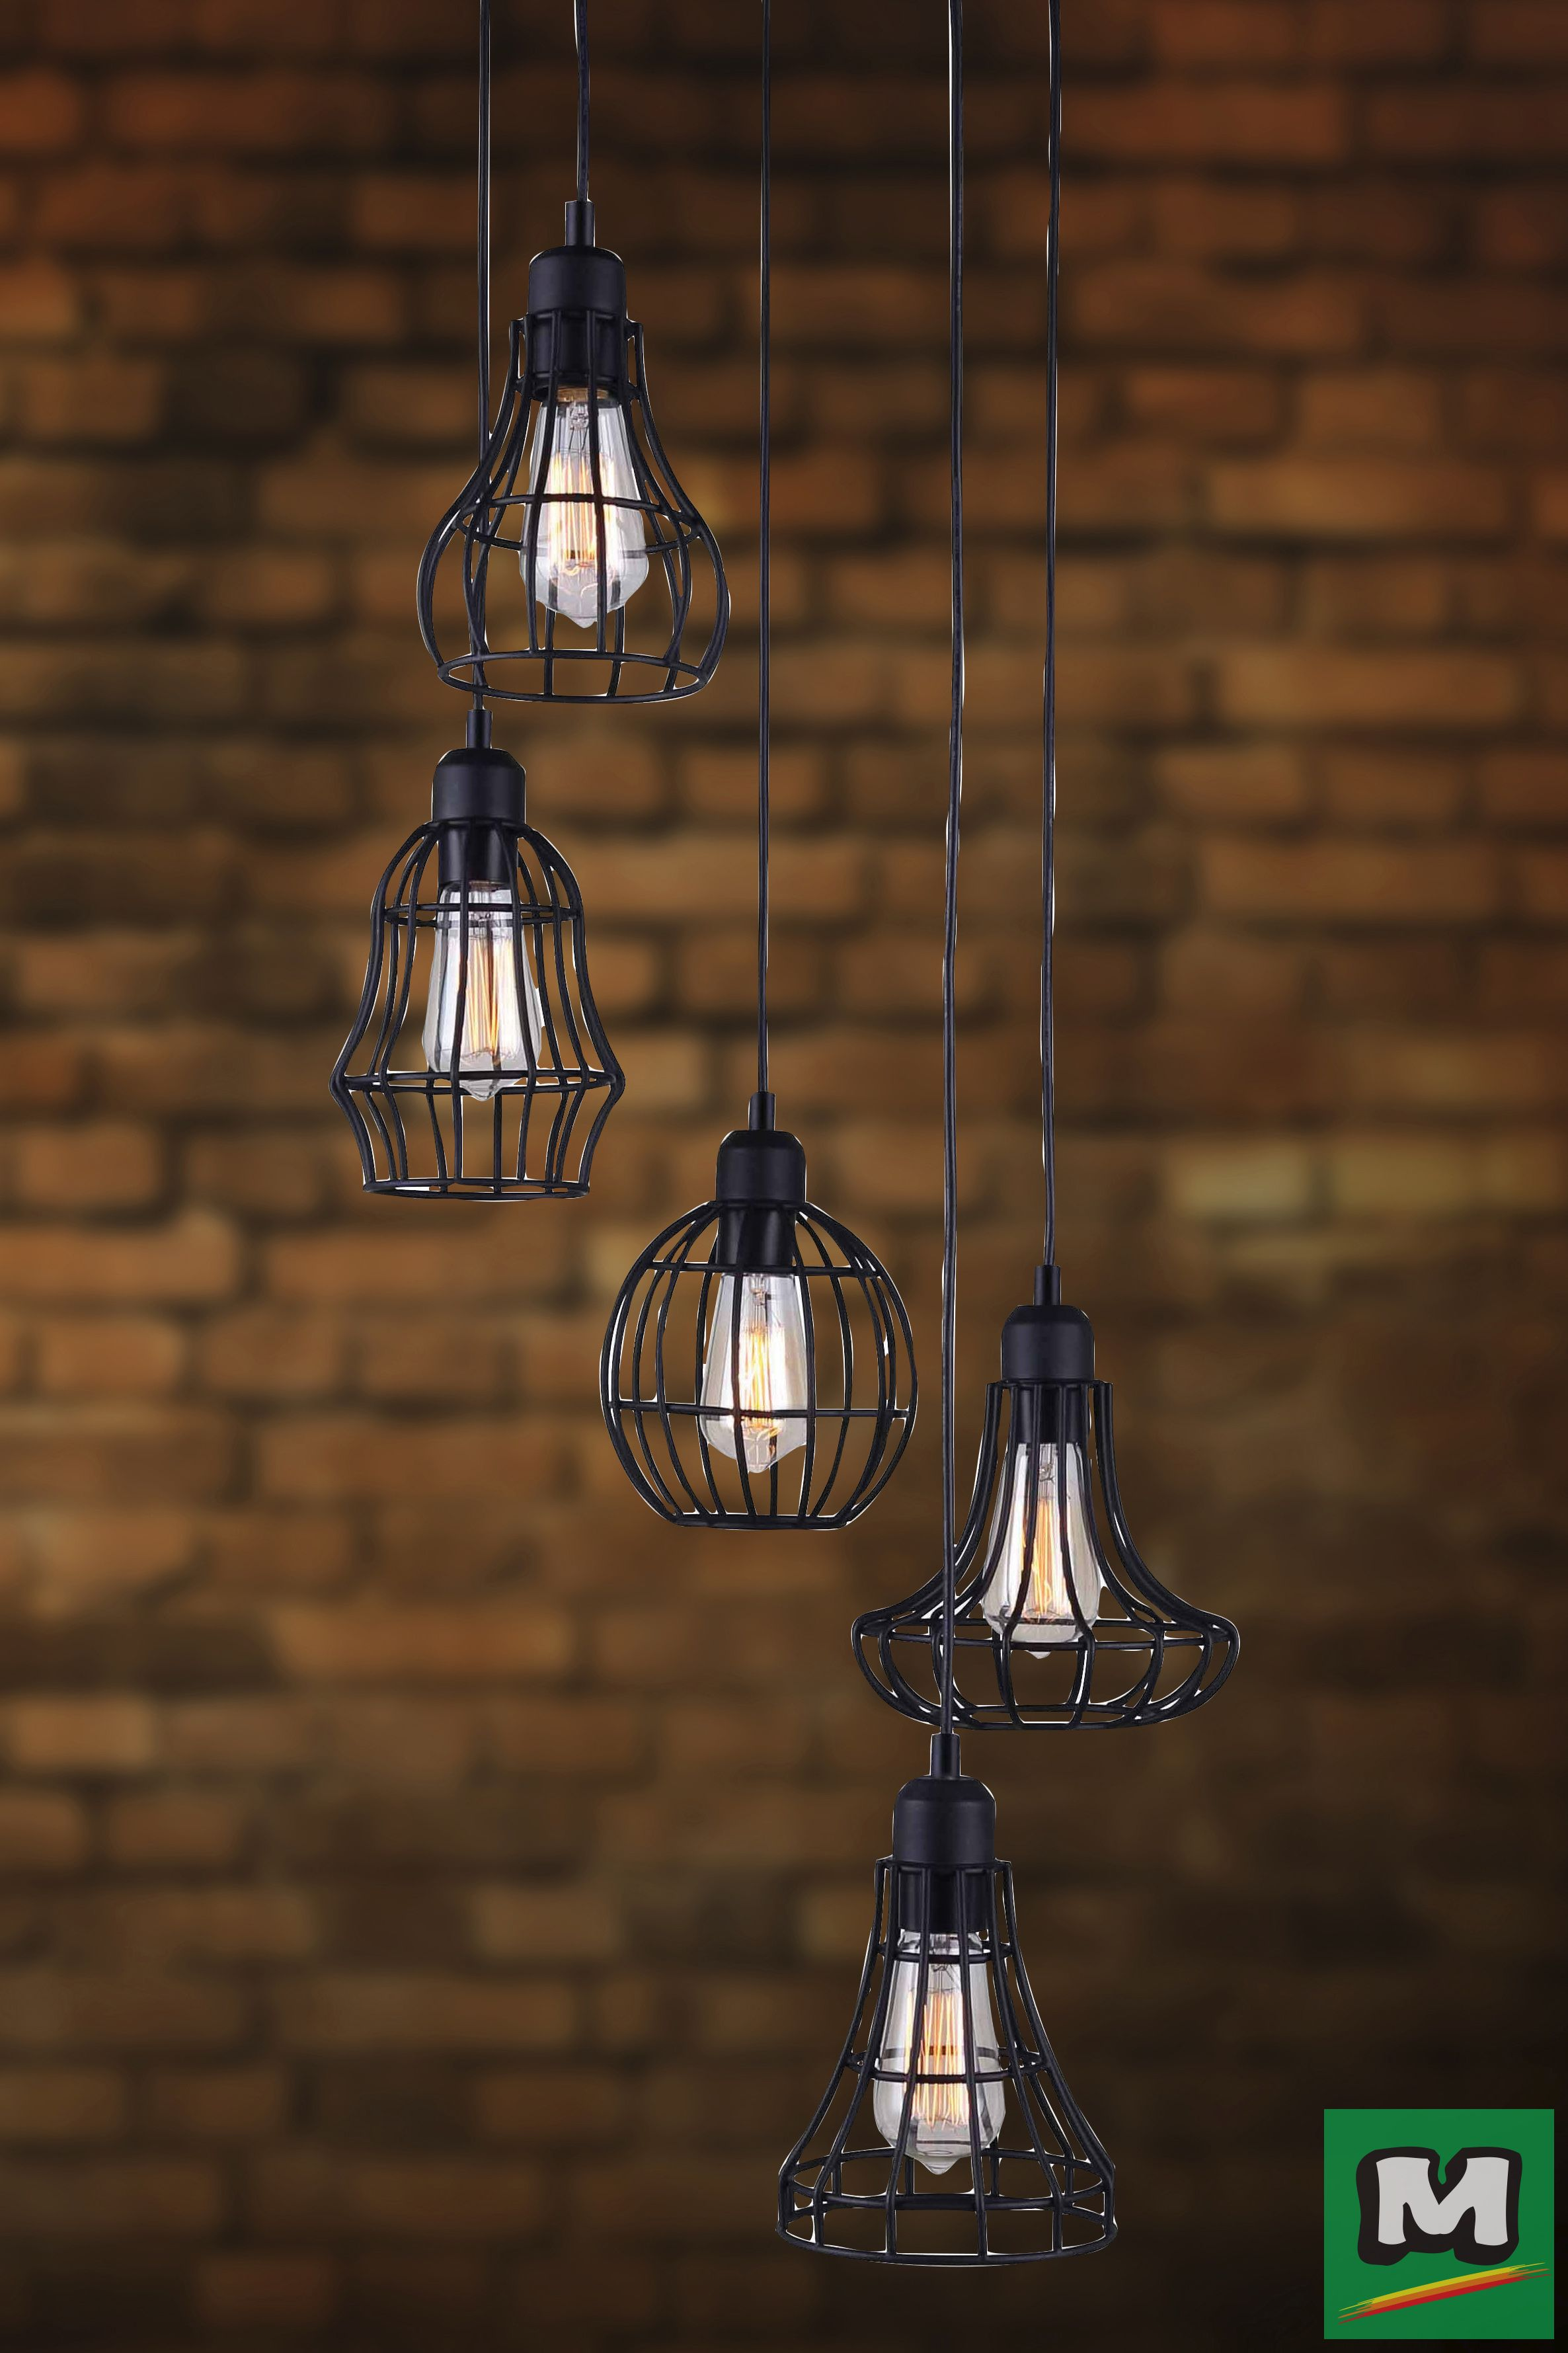 Patriot Lighting Raymond Chandelier with Black Finish and Metal